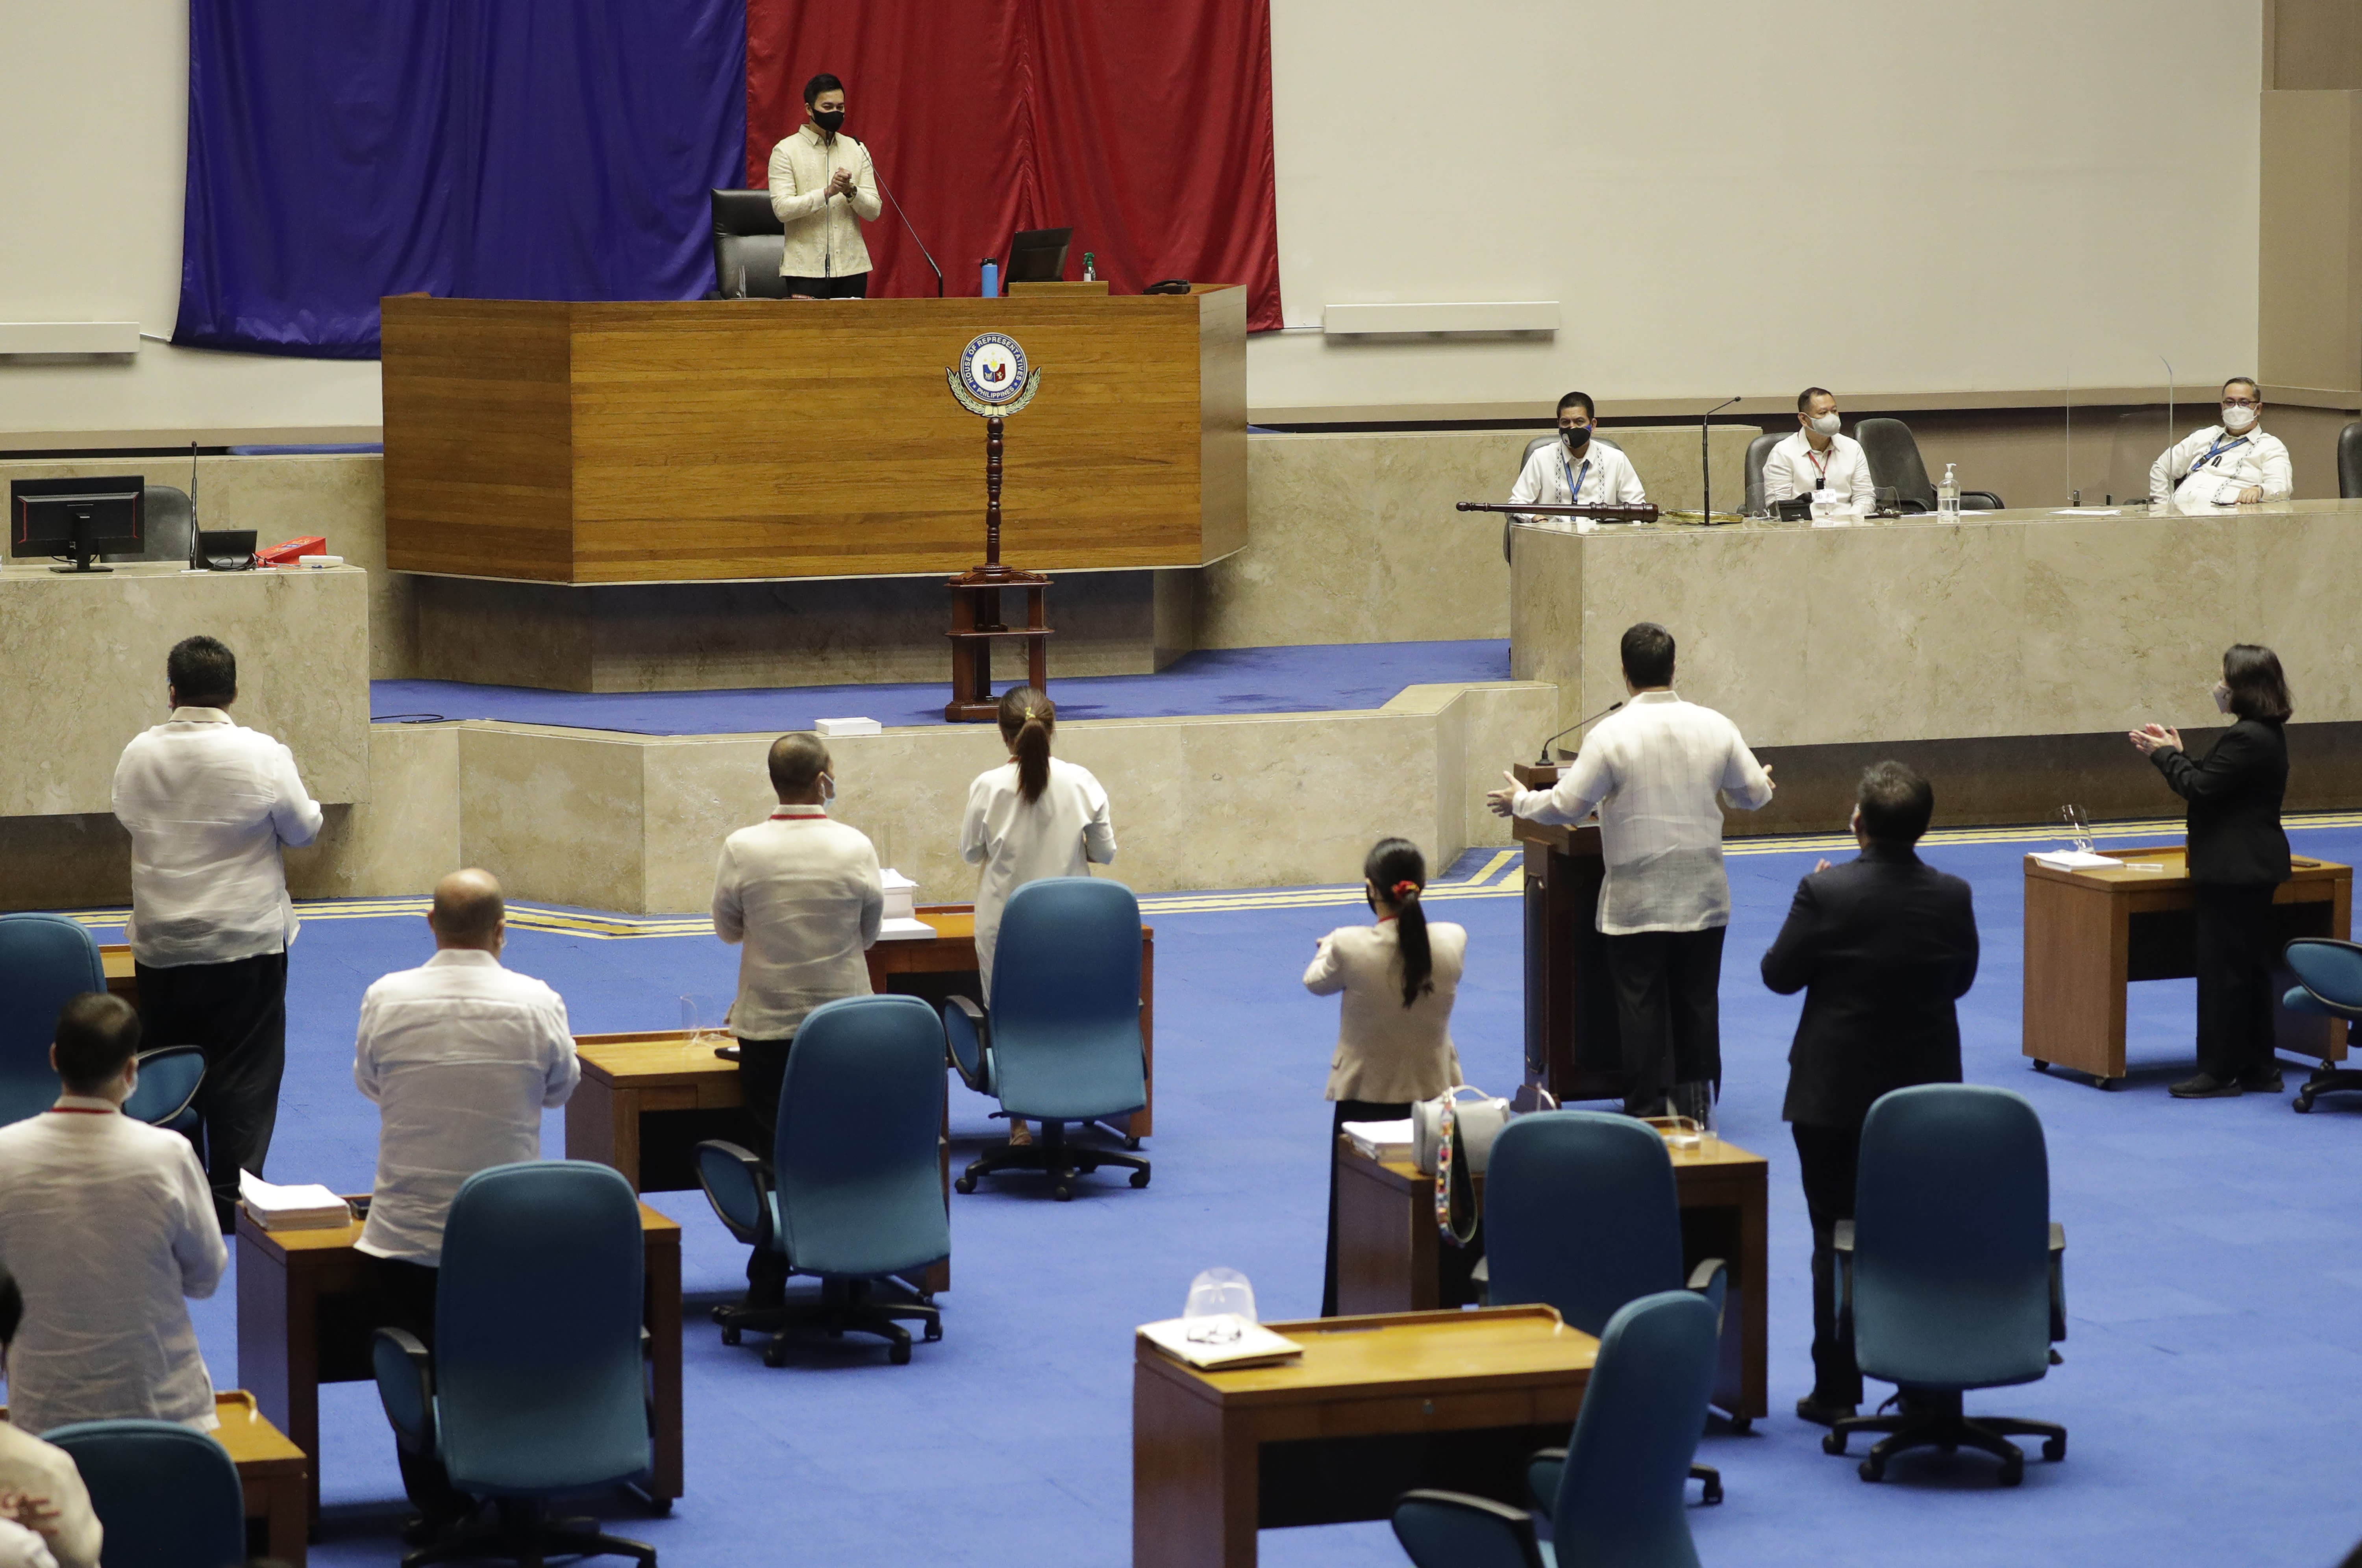 New House Speaker Lord Allan Velasco gestures during his first day at the House of Representatives in Quezon city, Philippines on Tuesday, Oct. 13, 2020. A large faction of Philippine legislators in the House of Representatives elected a new leader Monday in a tense political standoff between two allies of the president. (AP Photo/Aaron Favila)